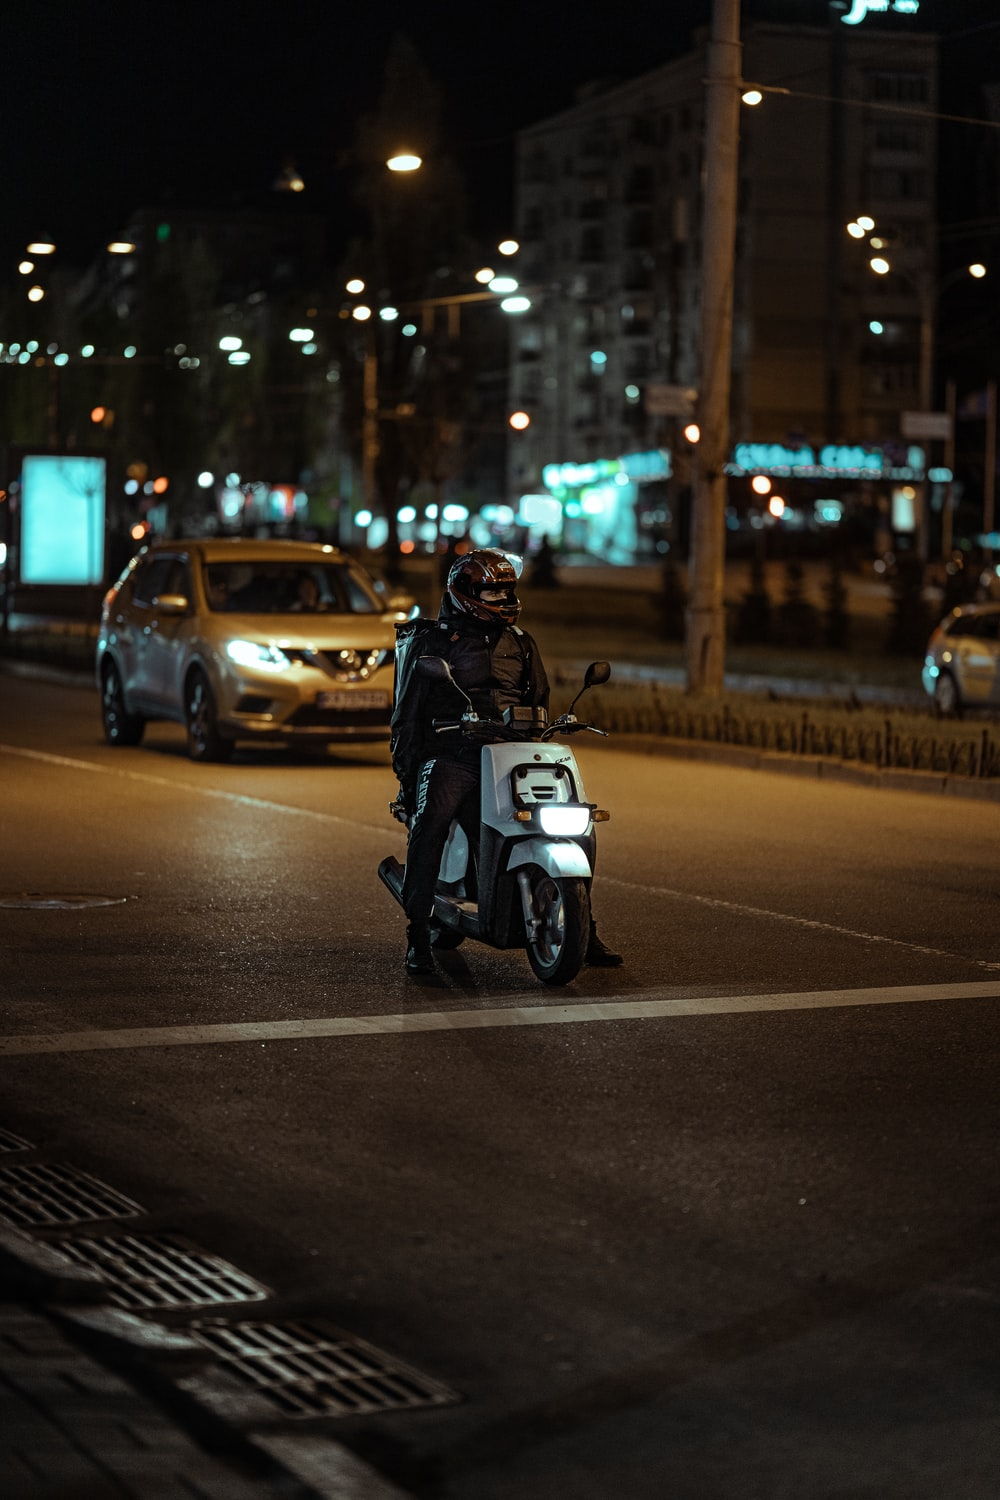 person riding white and black motorcycle on road during night time